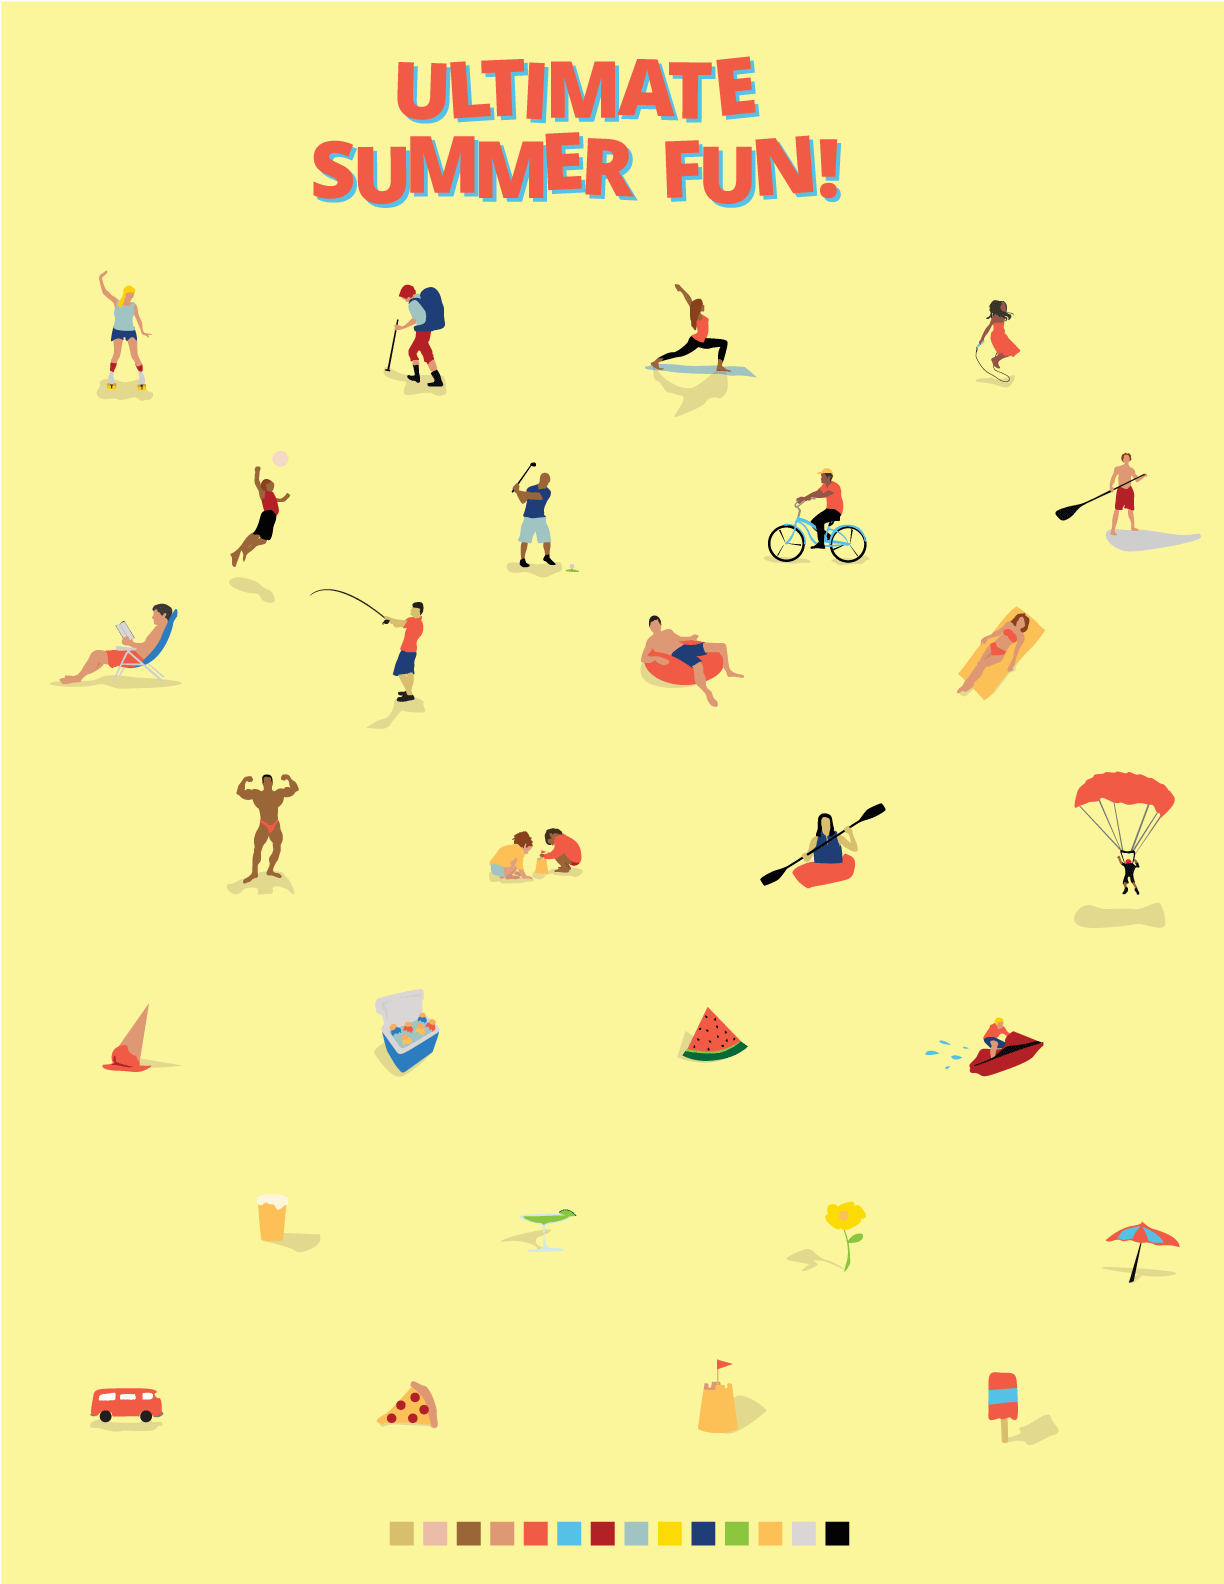 UltimateSummerFun_Illustrations